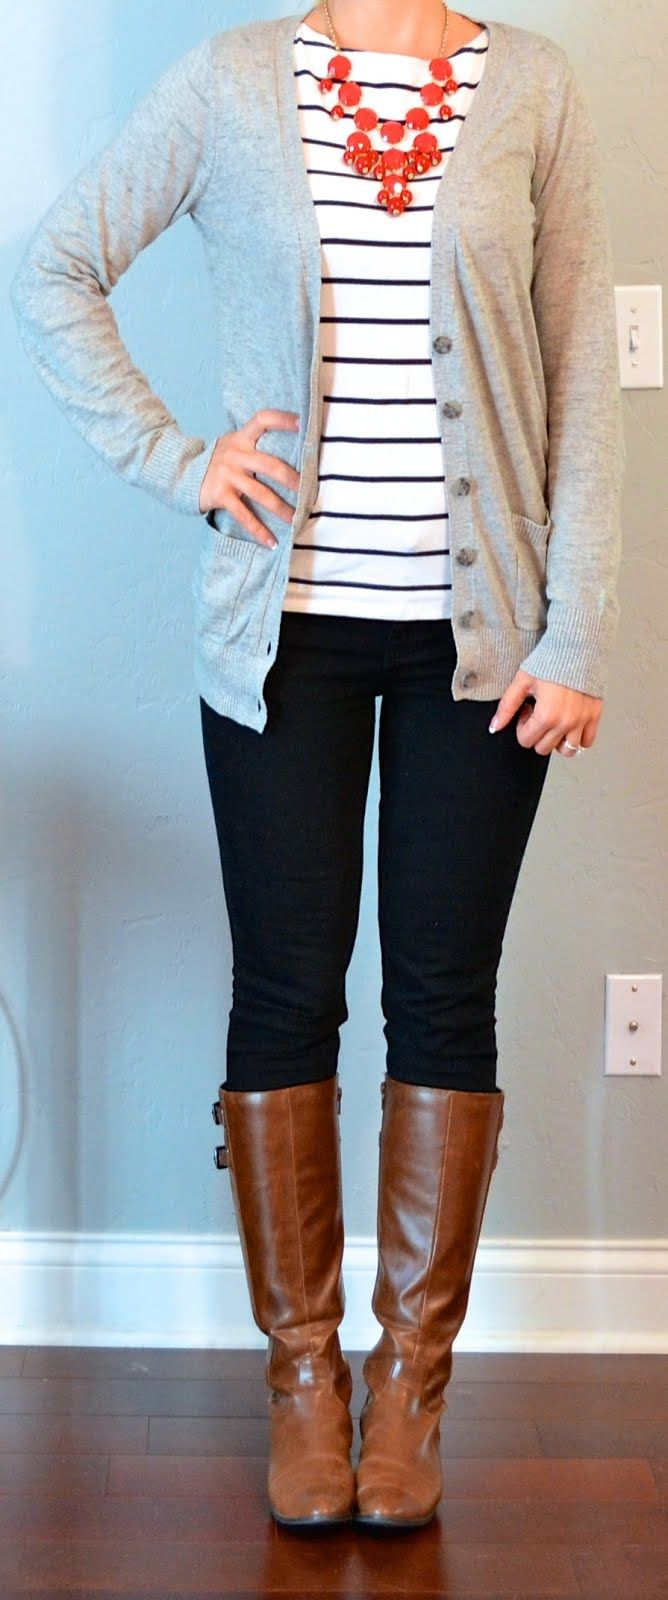 boots, leggings and stripes